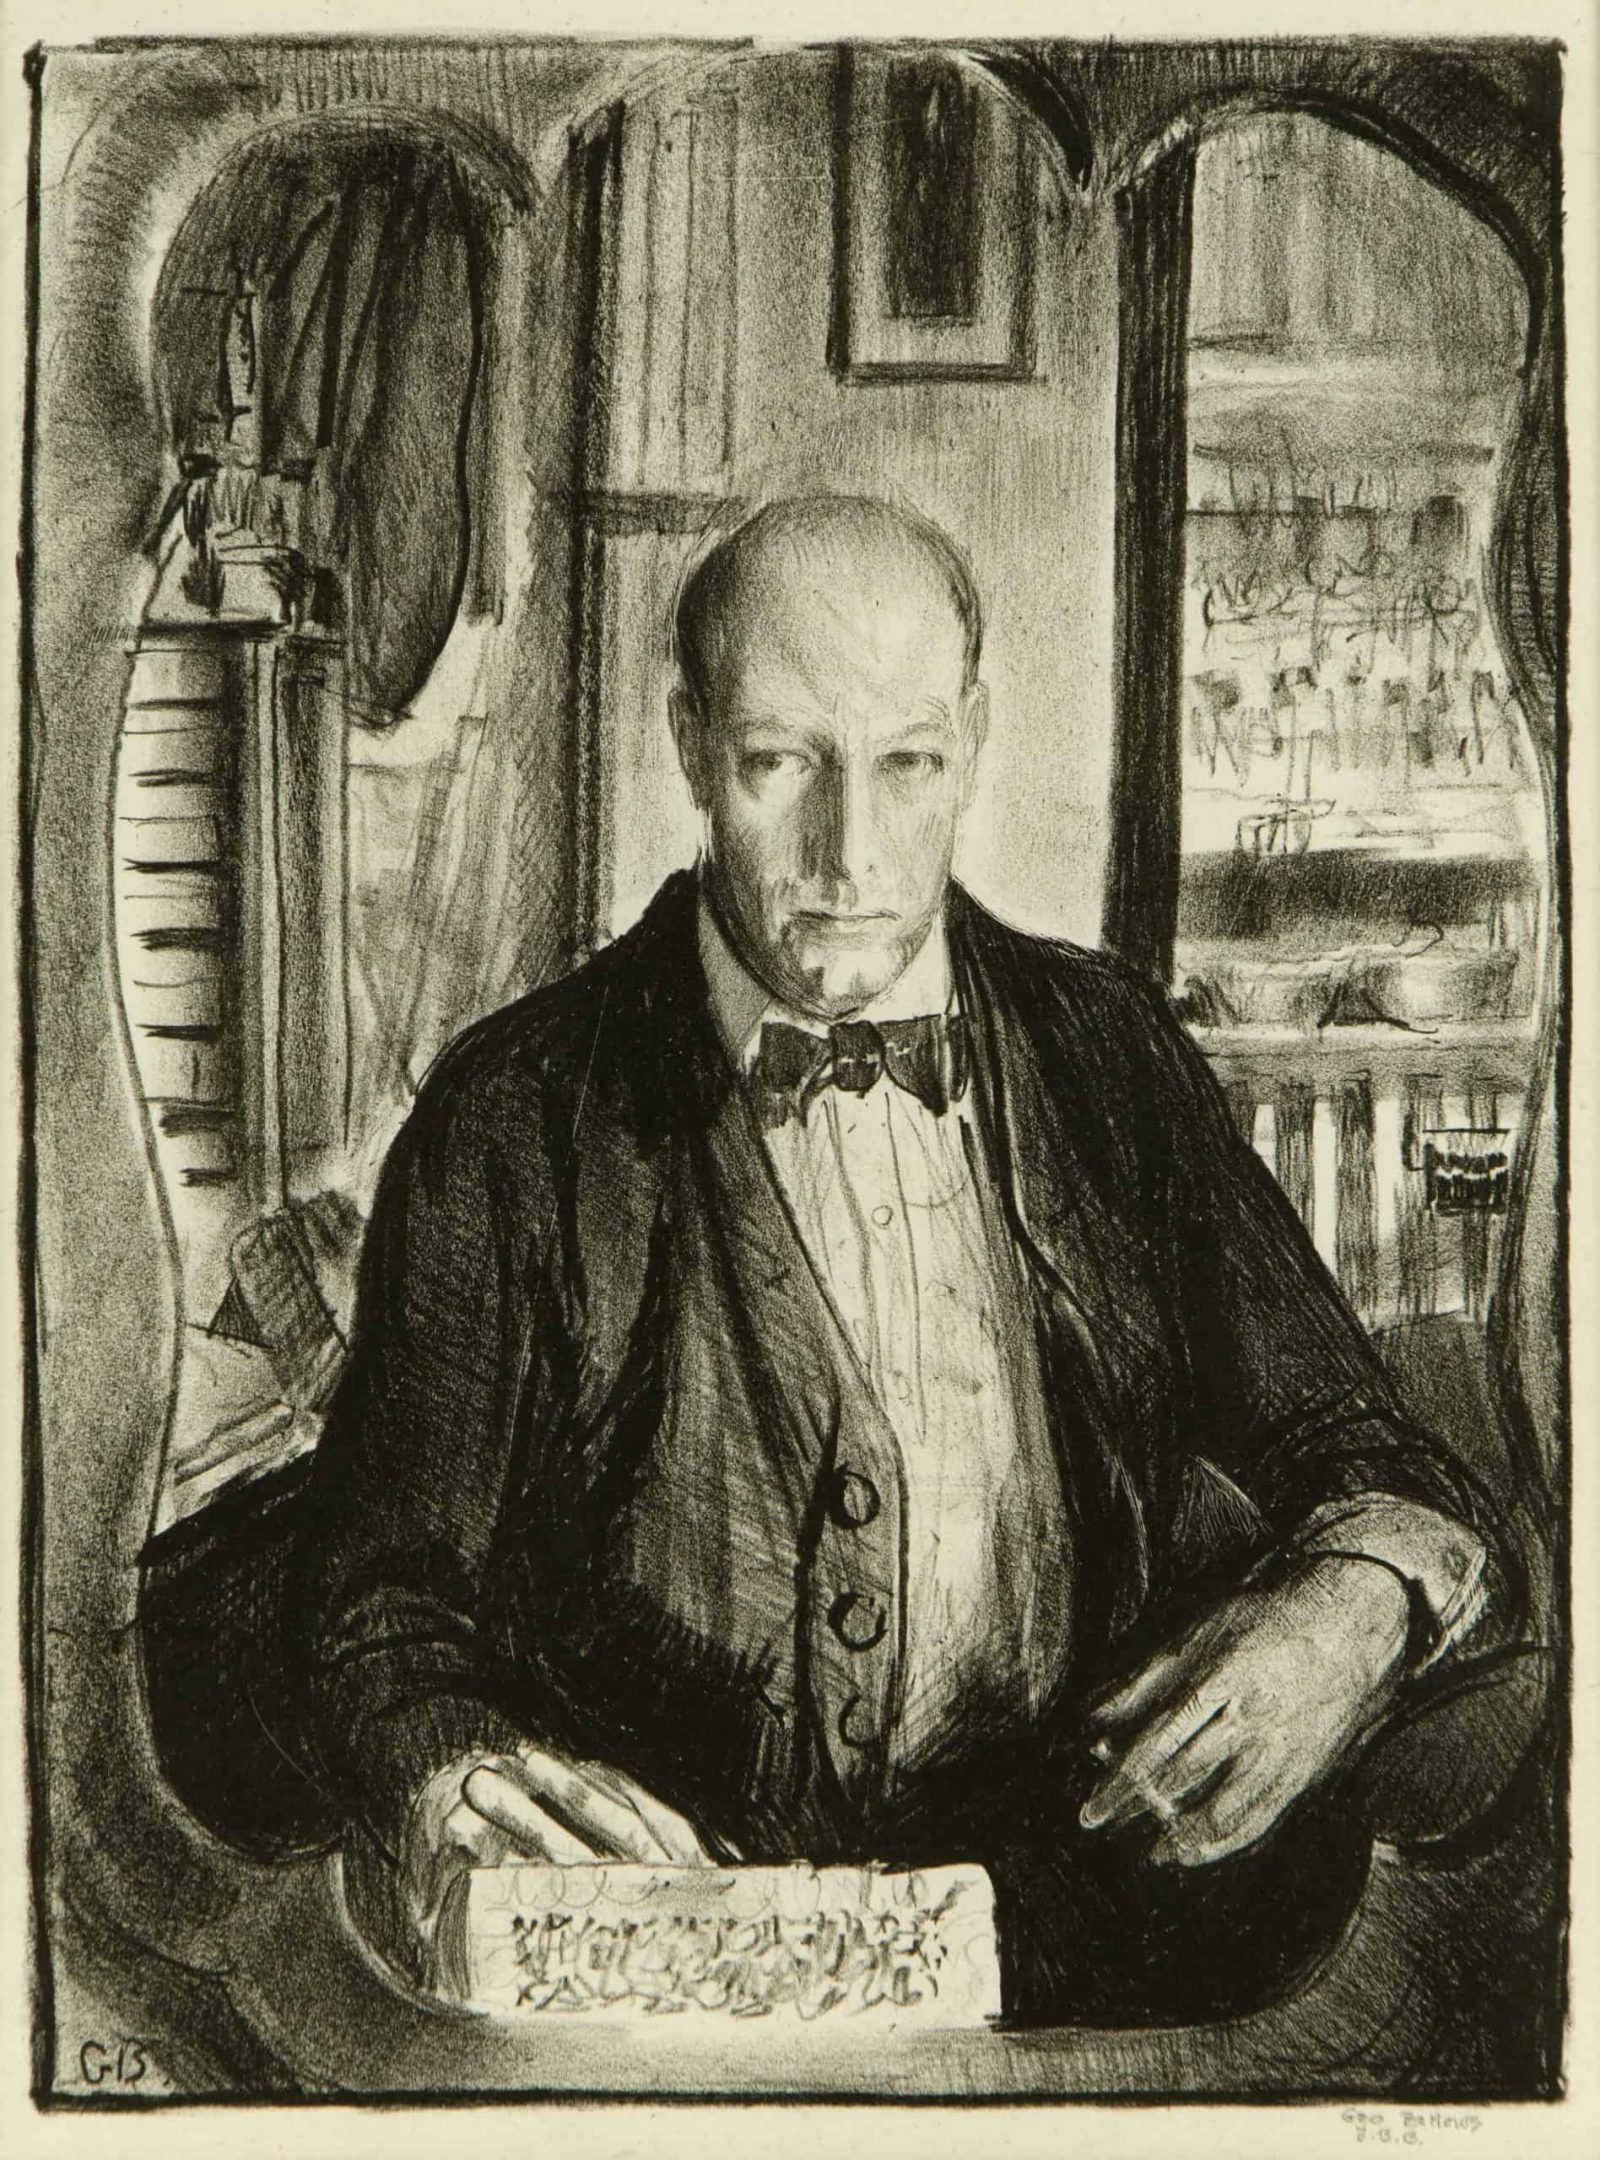 George Bellows, Self-Portrait Lithograph, 1921 Museum Purchase with funds provided by Lois Chope